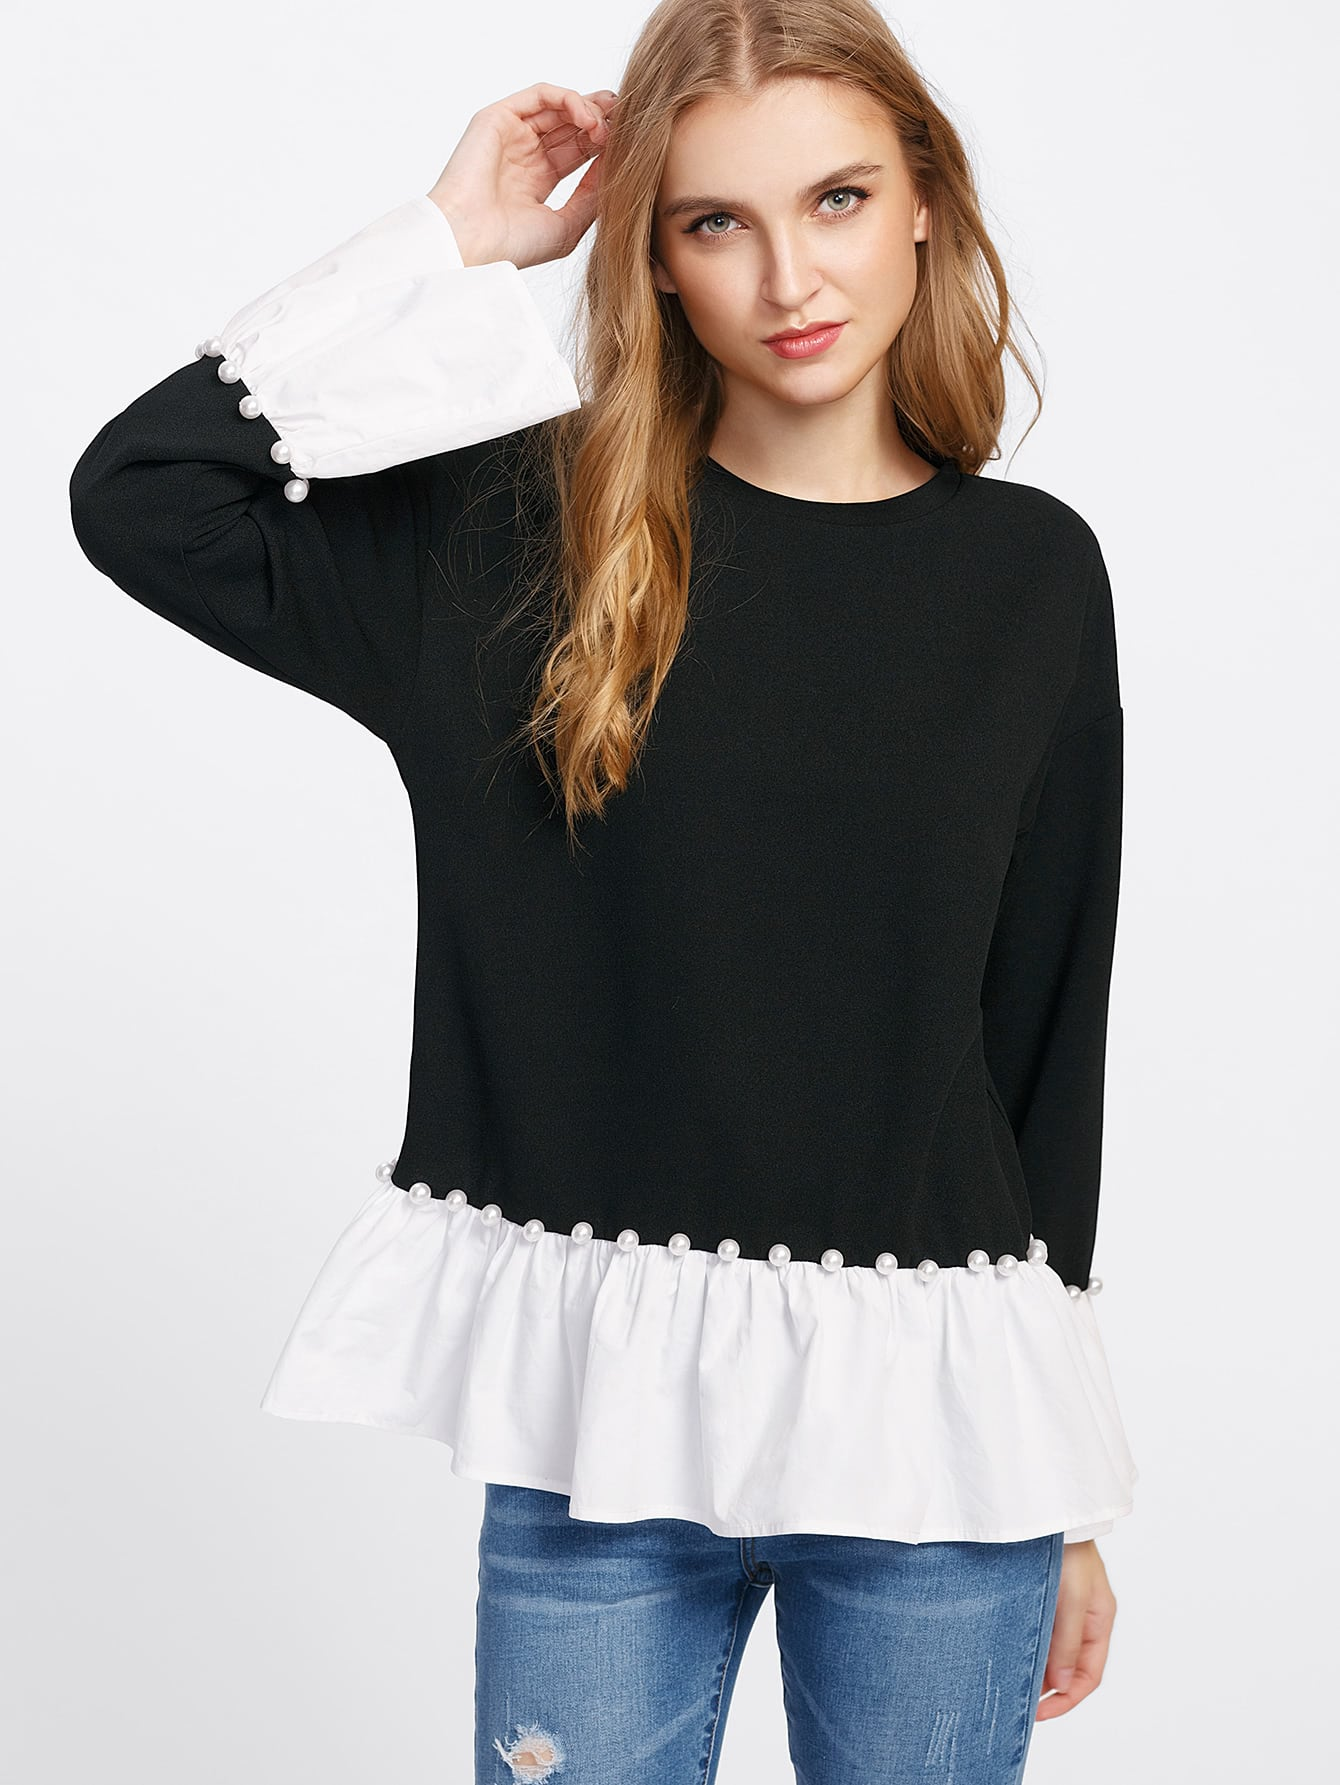 Pearl Beading Contrast Flounce Trim Top pearl beading layered sleeve top